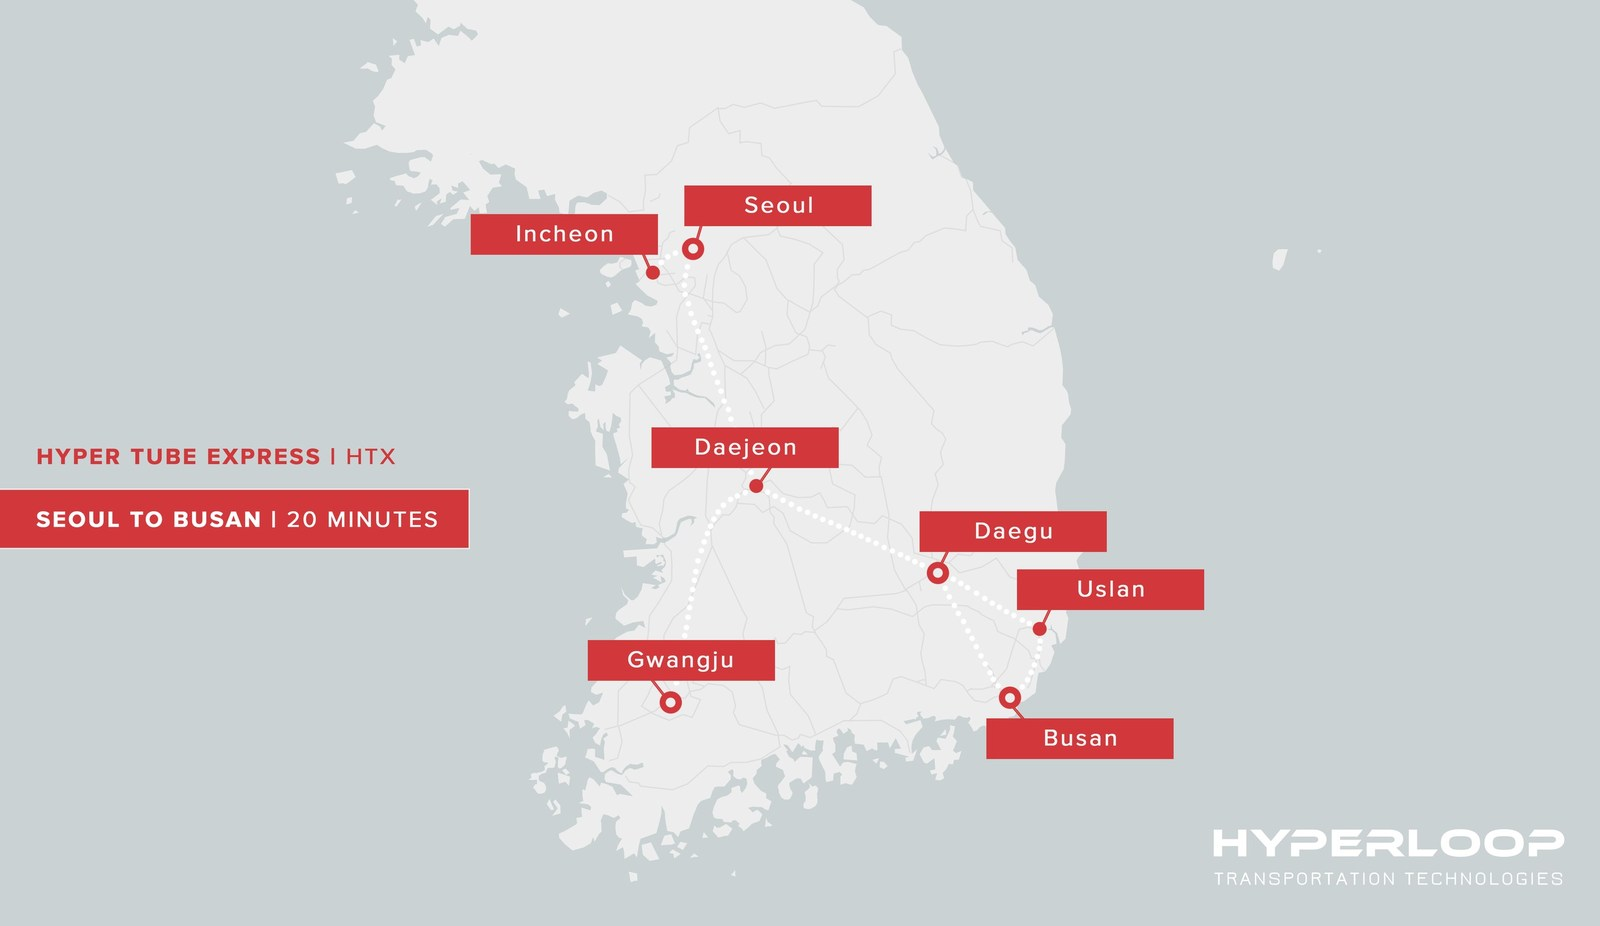 What is HyperTube Express? South Korea to soon build a full scale Hyperloop system